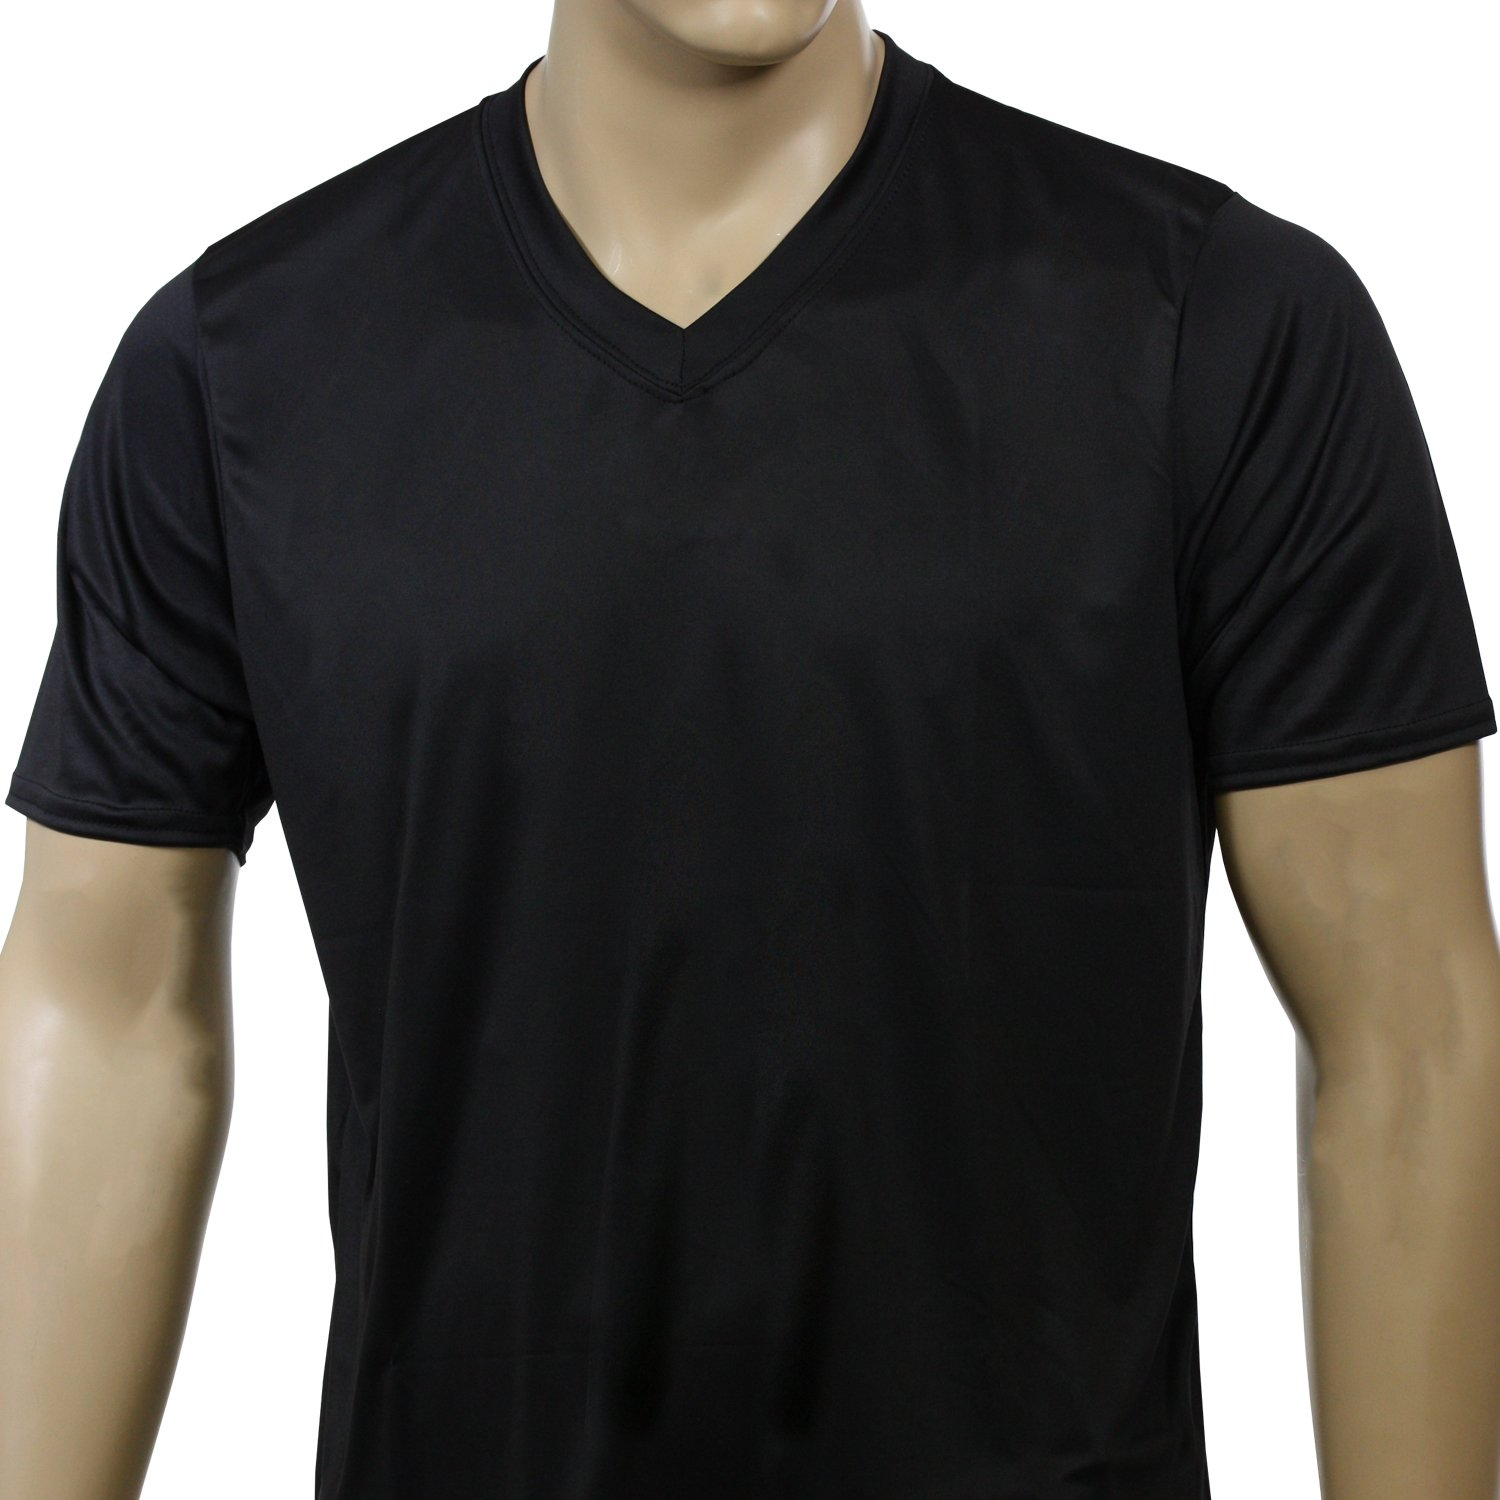 McDavid 905VT Mens Half Sleeve Referee Cut V-Neck T Shirt Black Medium [Misc.]